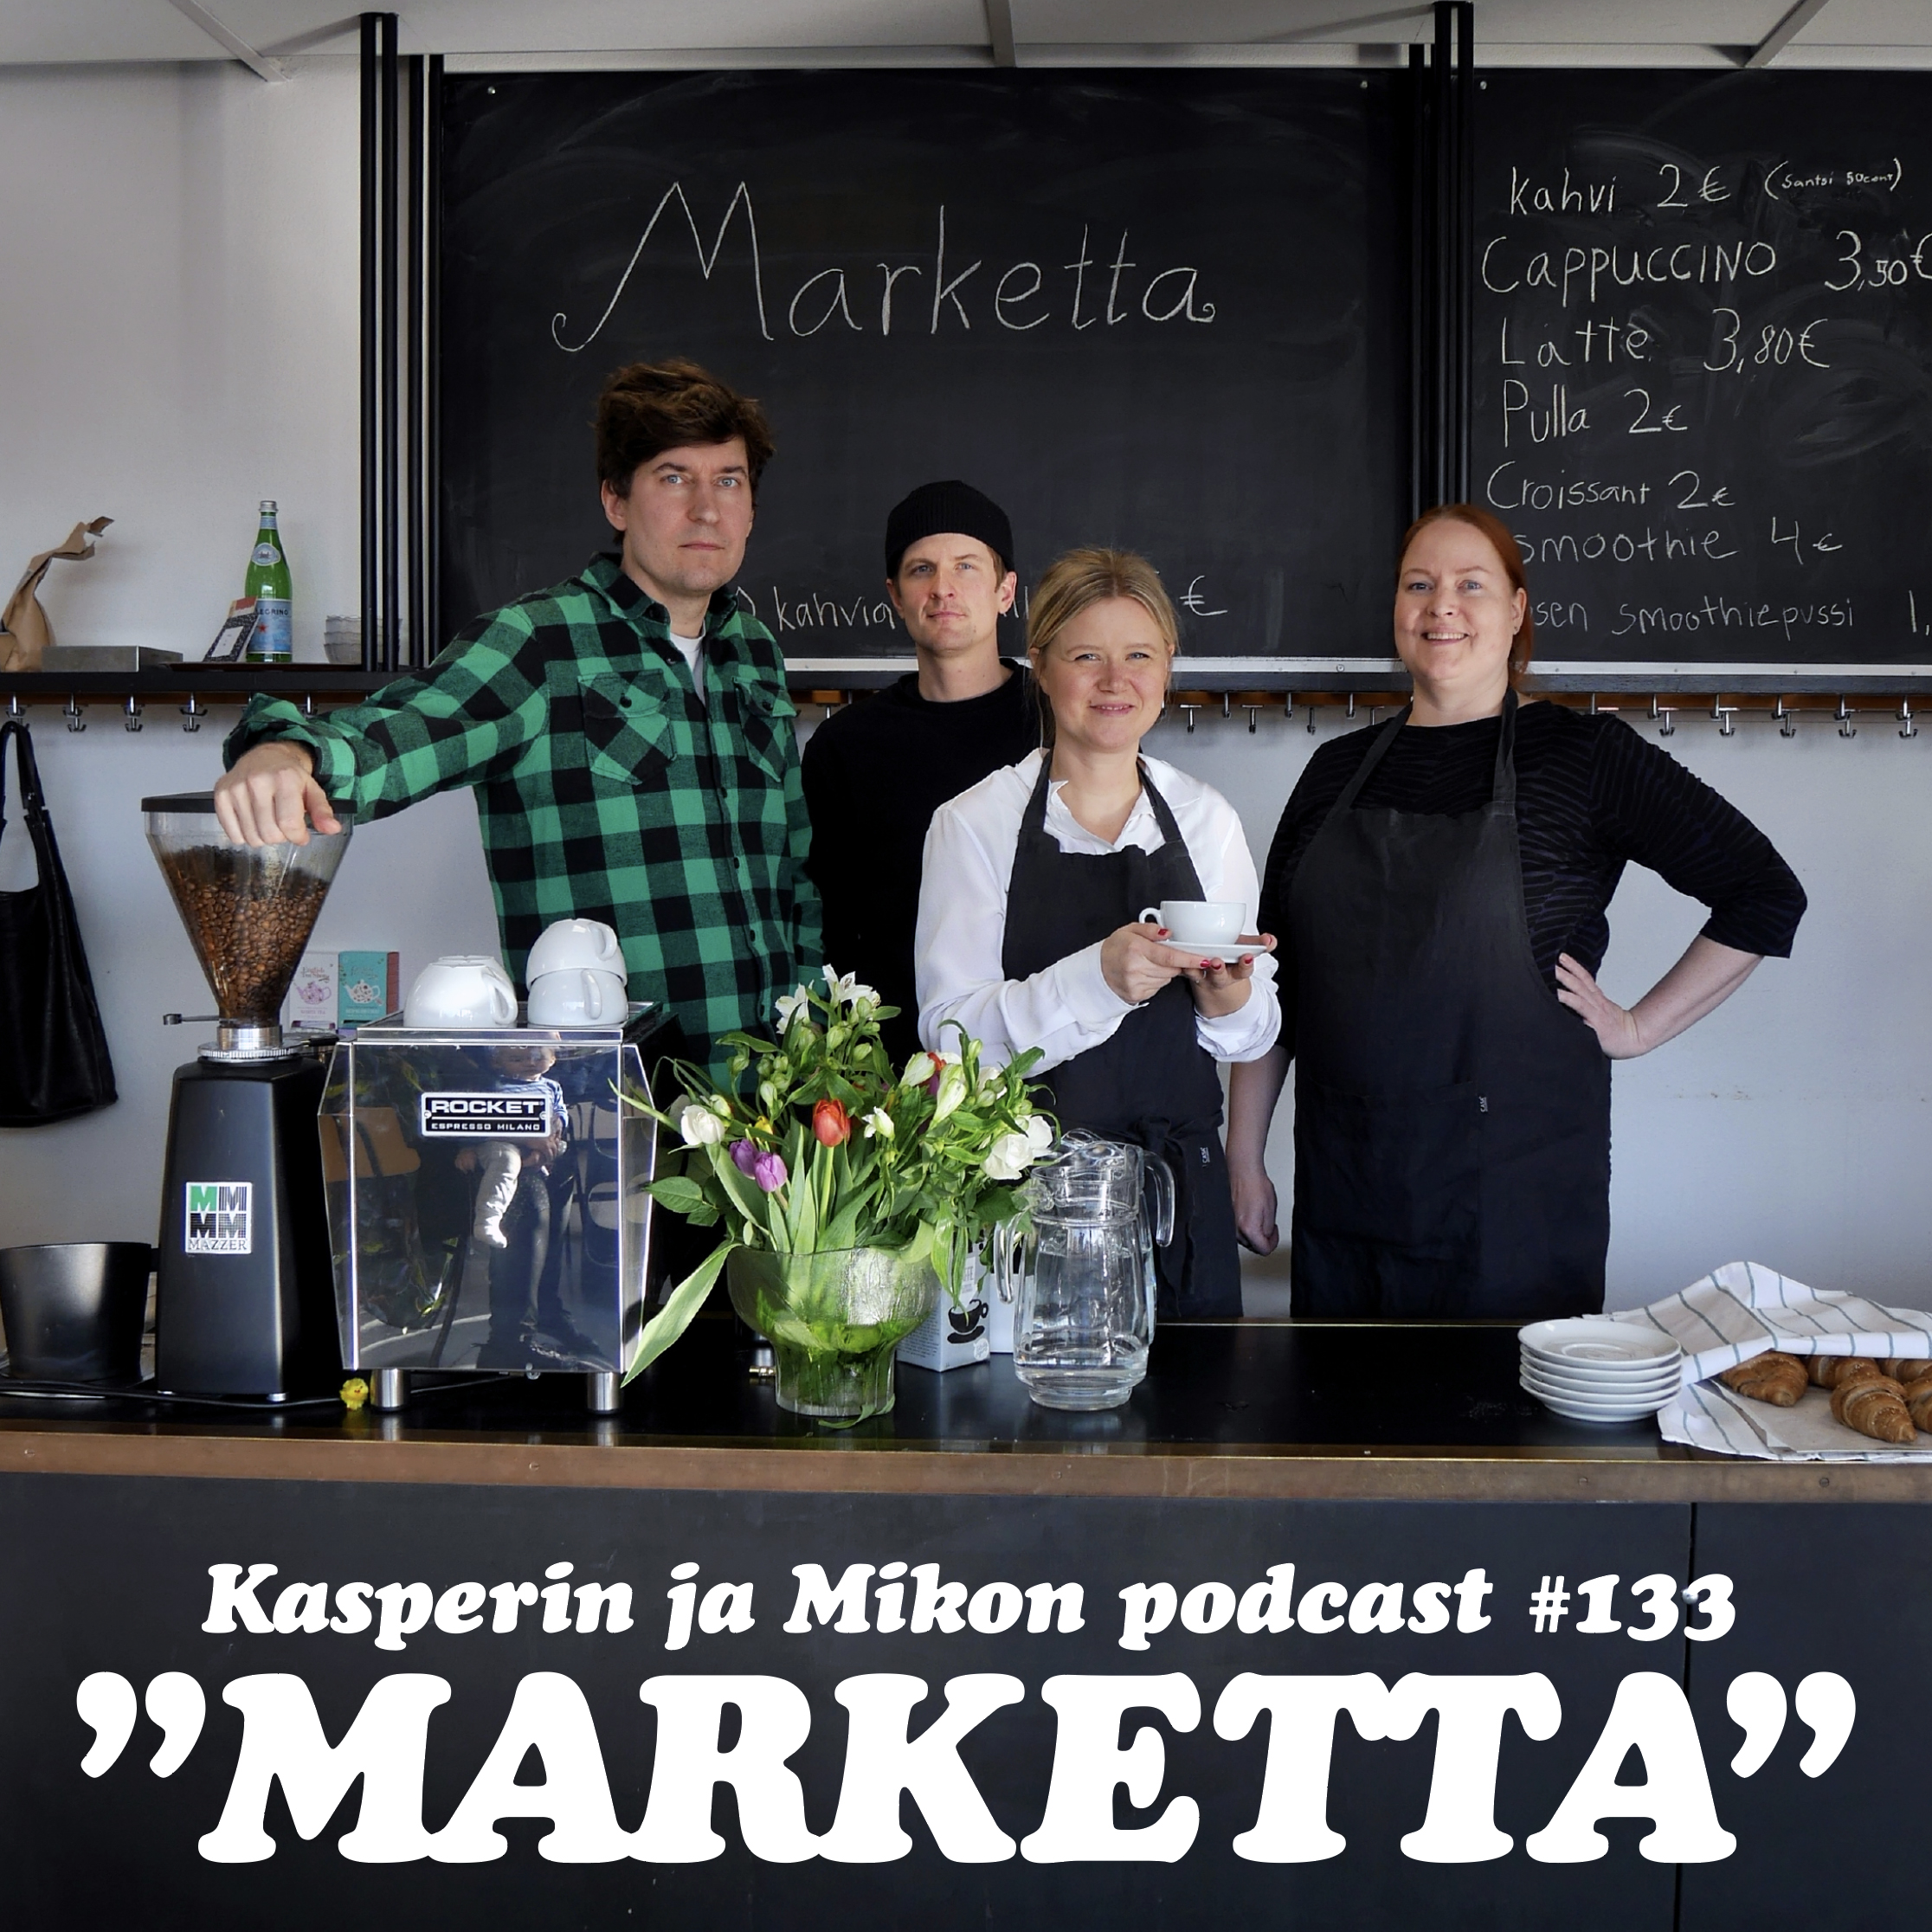 "133 Marketta - Kasperin ja Mikon podcast #133 ""MARKETTA"""